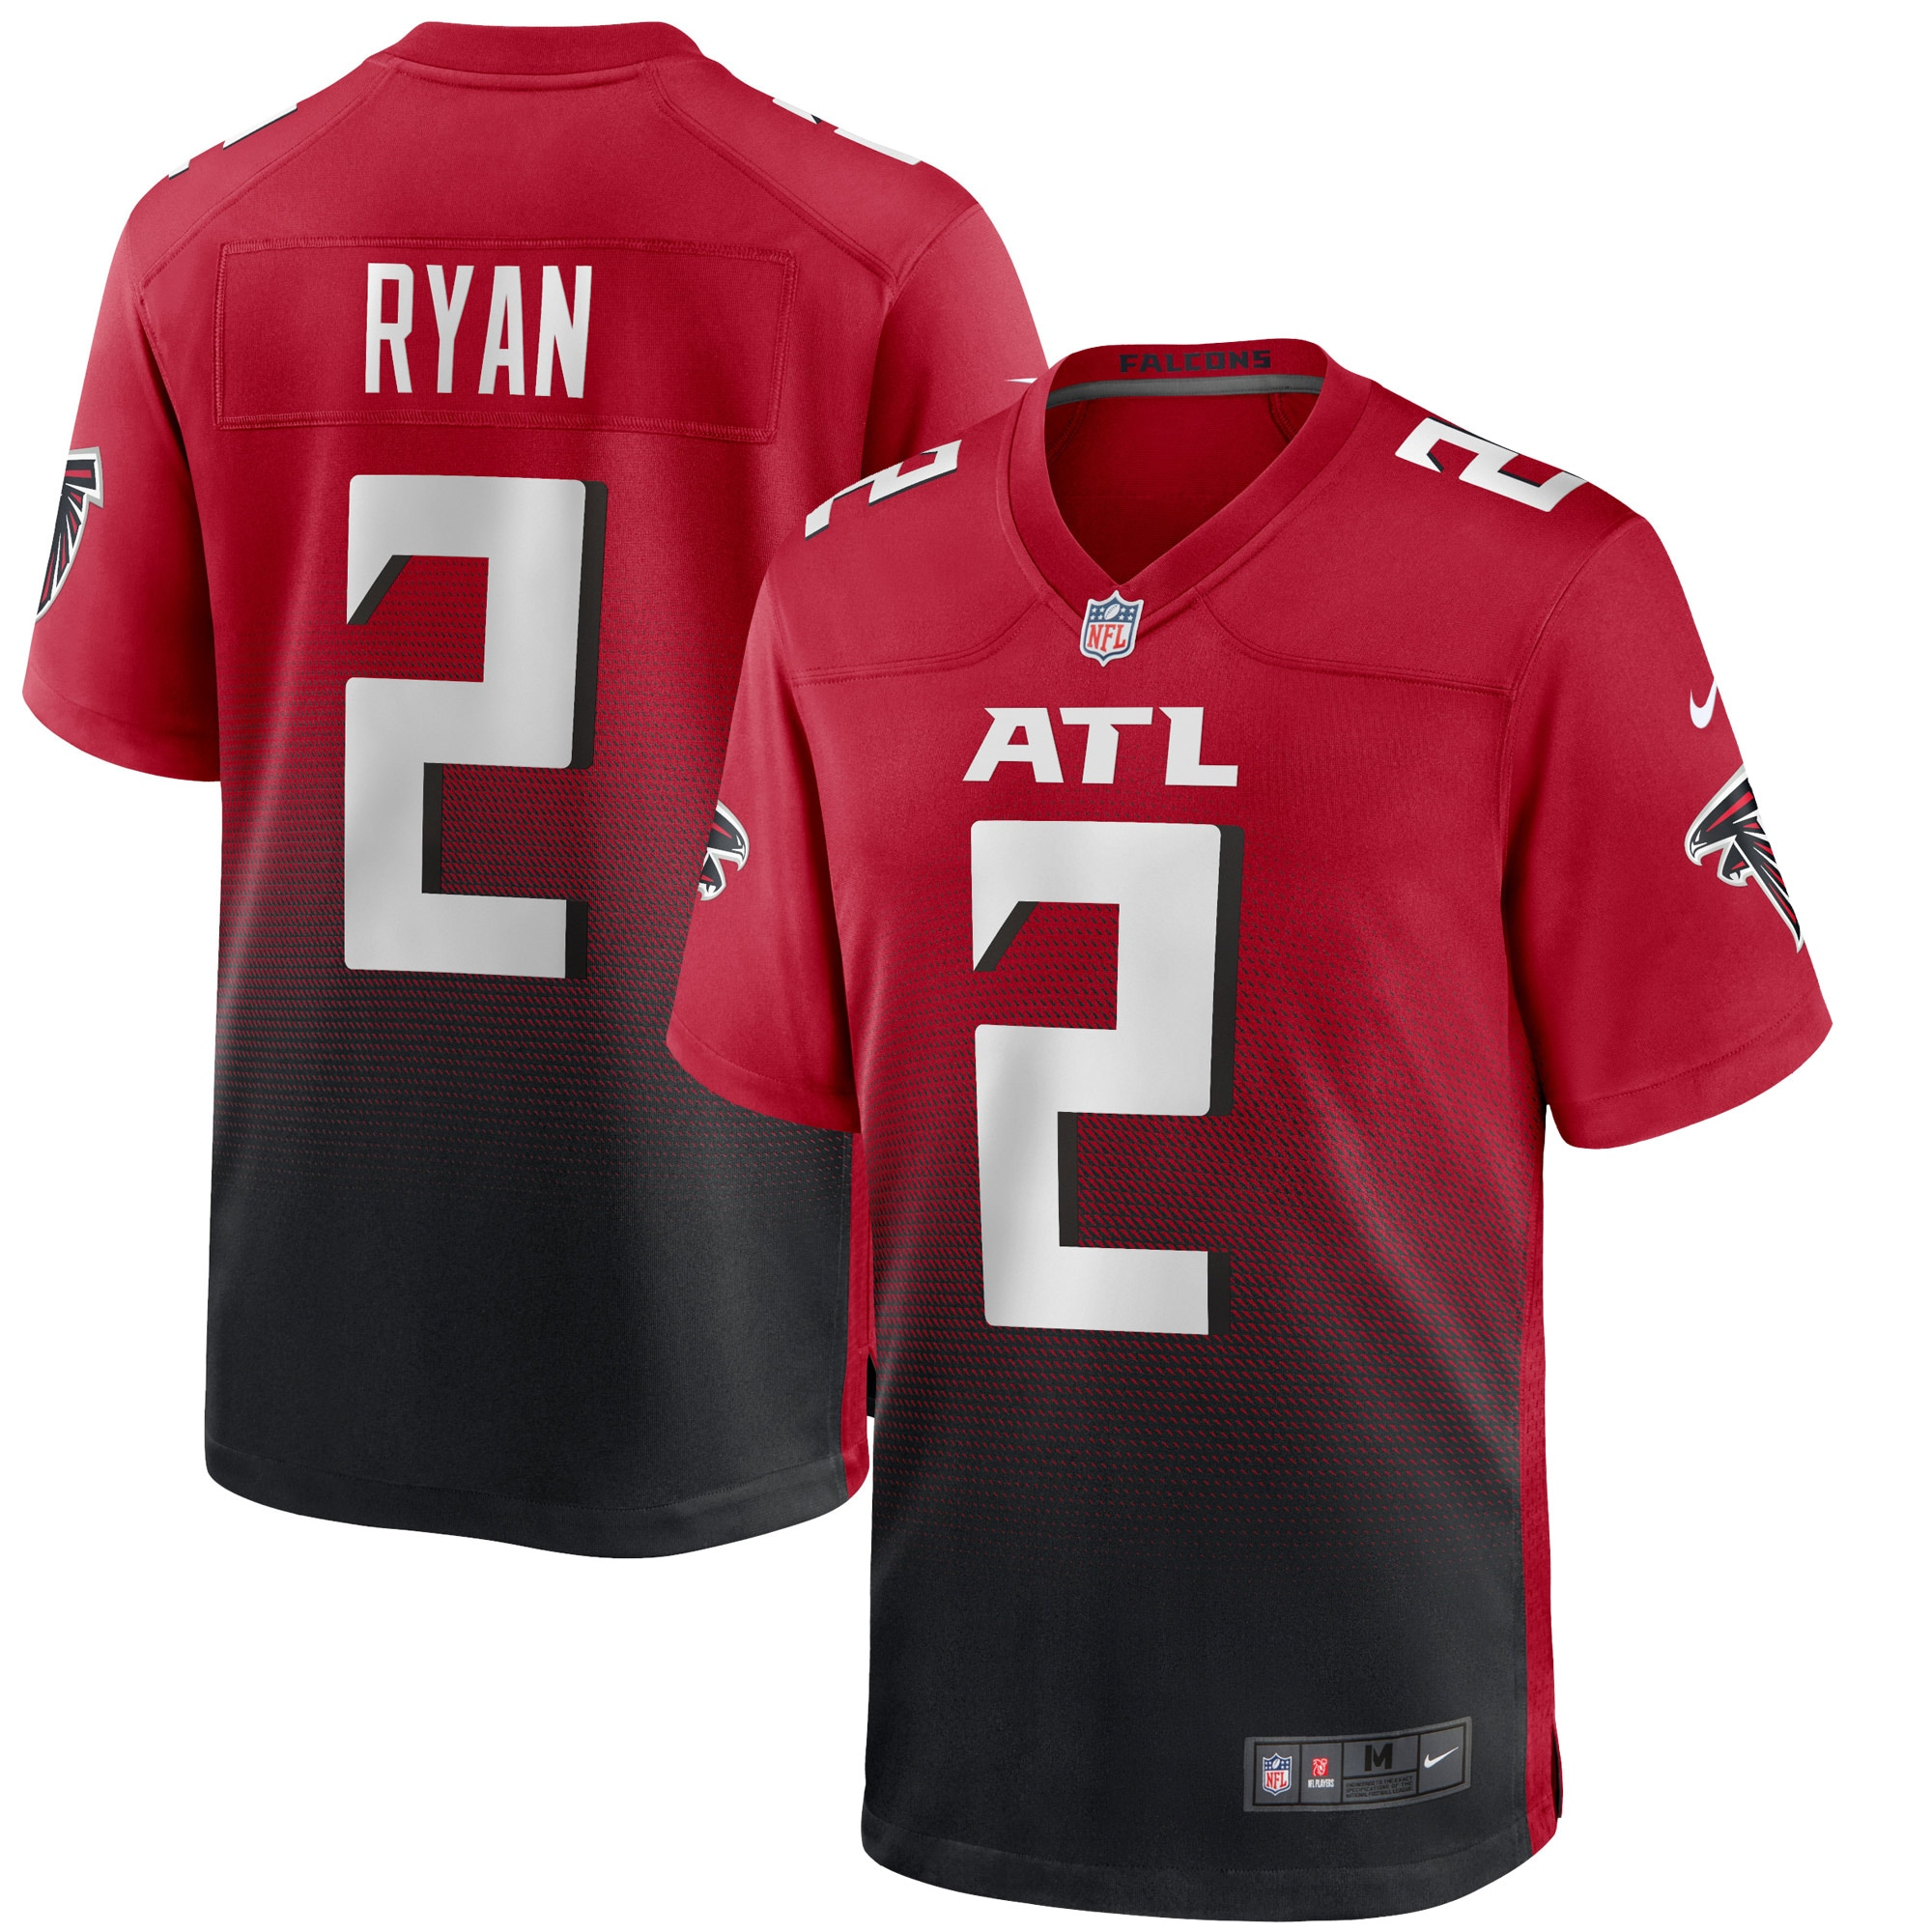 Matt Ryan Atlanta Falcons Nike 2nd Alternate Game Jersey - Red